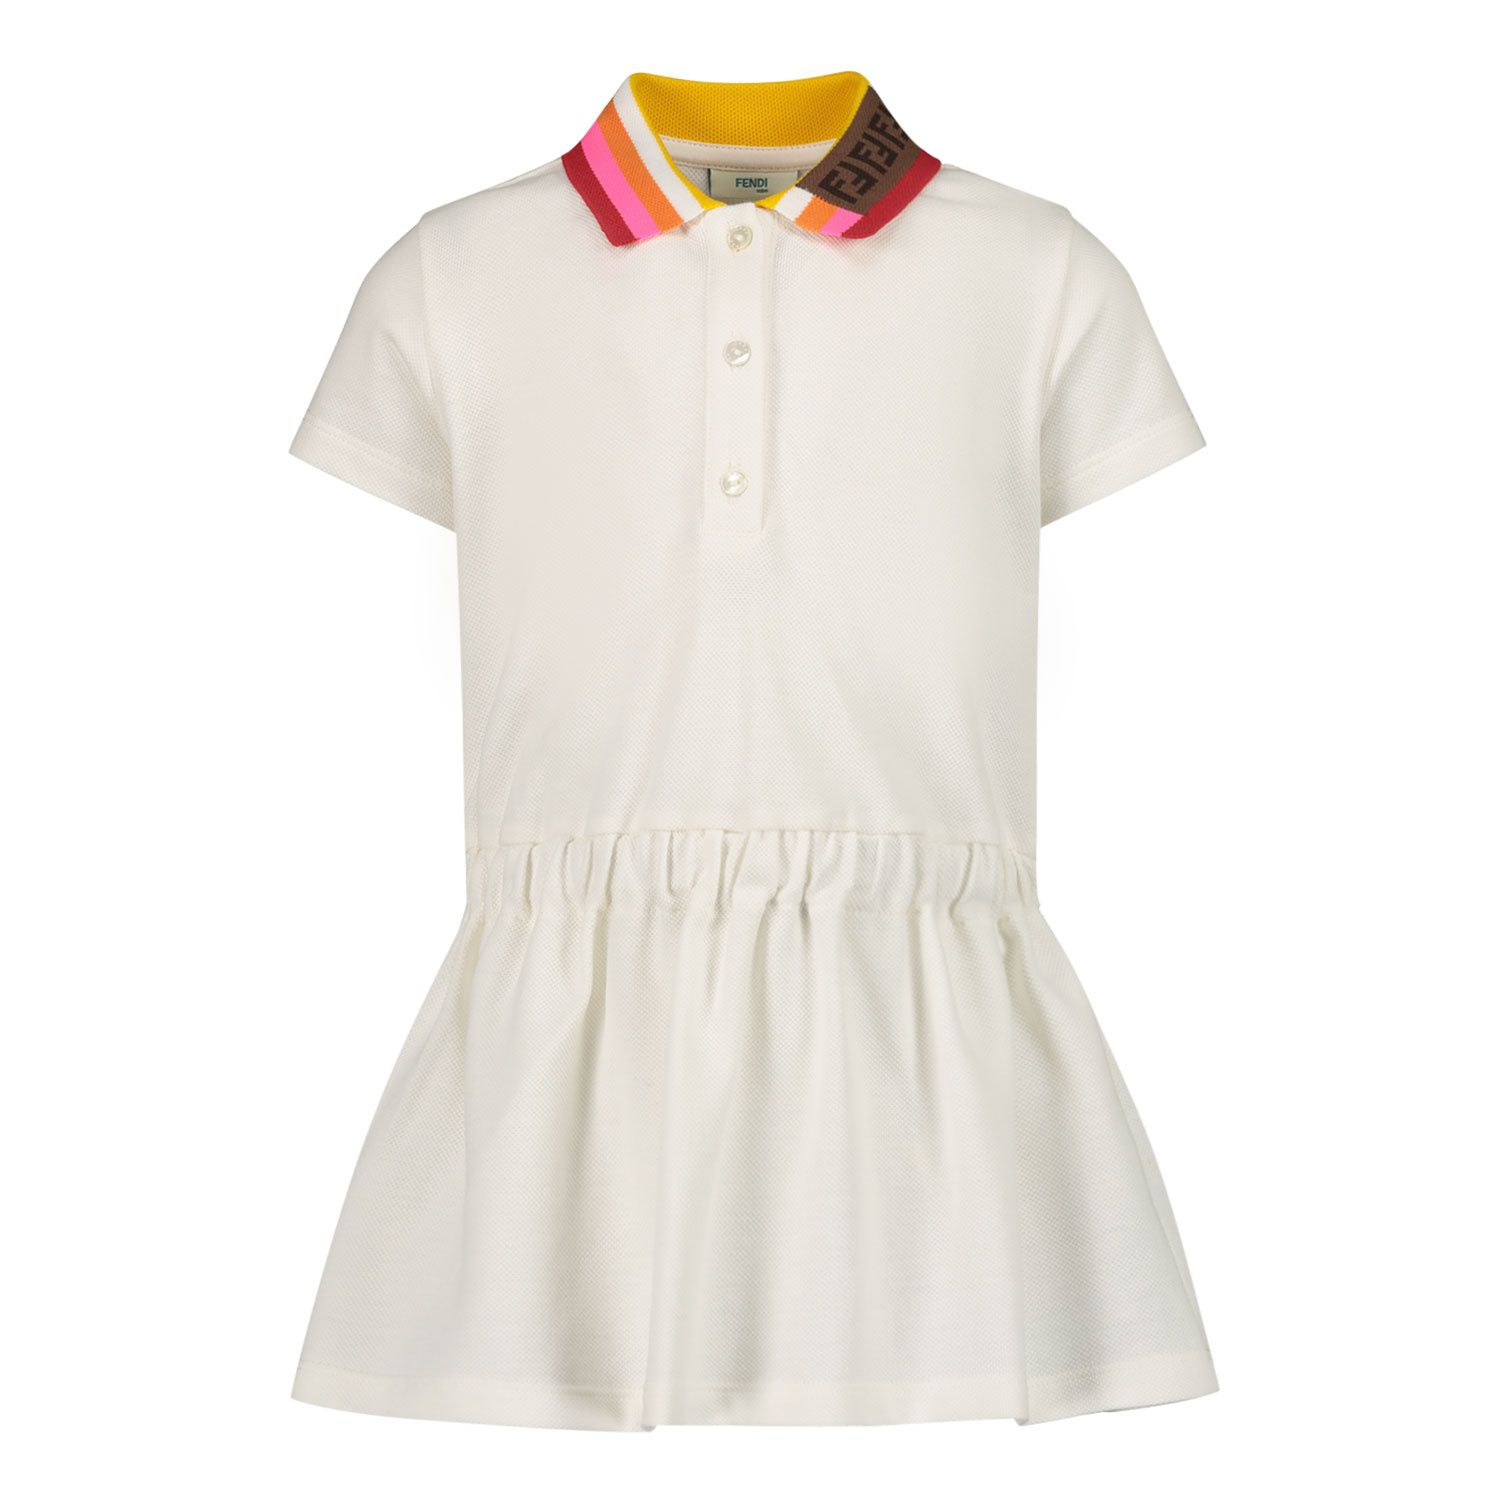 Picture of Fendi BFB360 AVP baby dress white